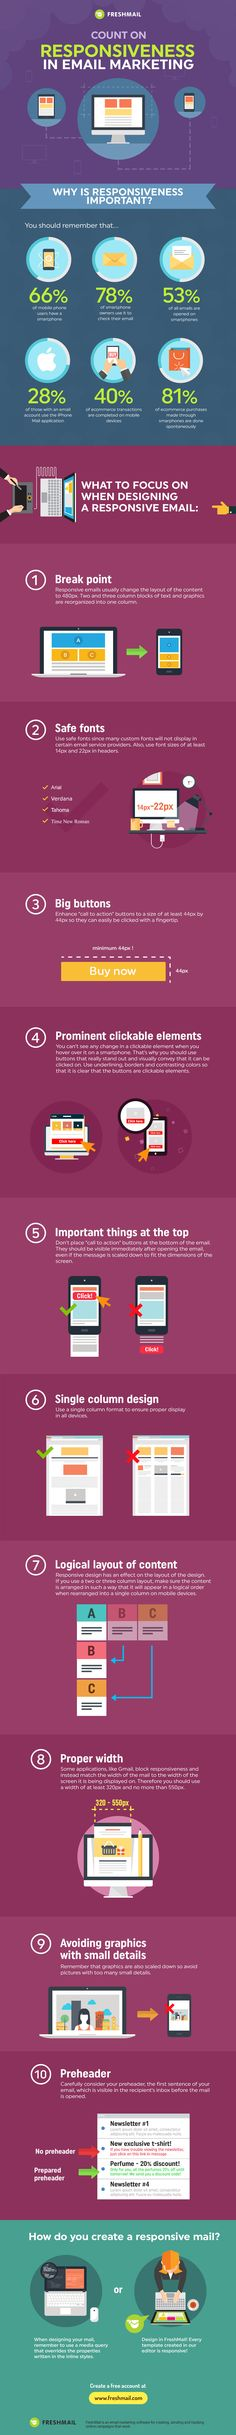 How can you make a one-size-fits-all newsletter when your subscribers use a long list of difference devices to open your newsletters? That's easy - with responsive design. Learn all you need to know about how to design your newsletter to fit every screen. #infographic #responsive #design #emailmarketing